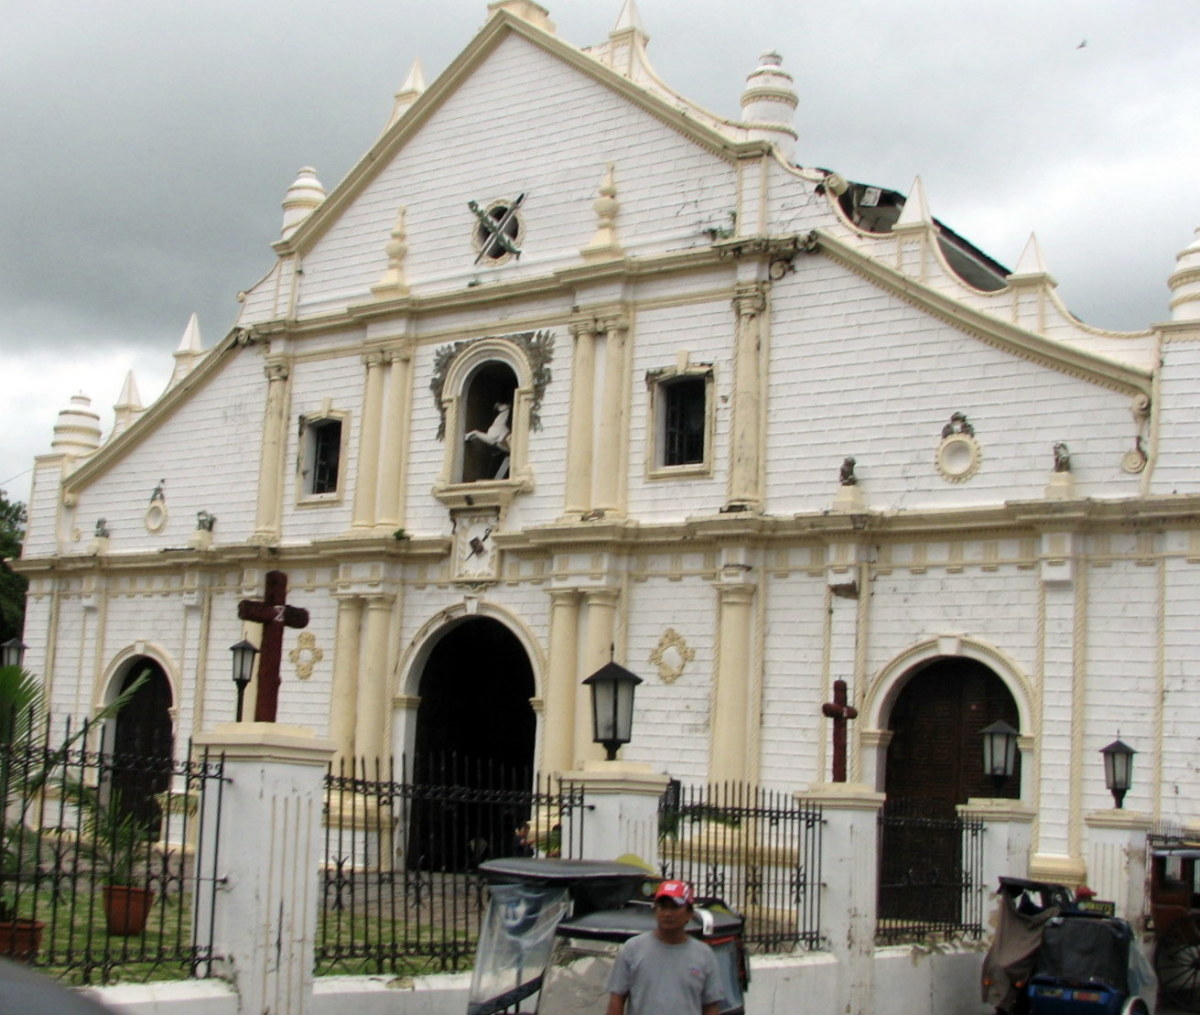 Cathedral of Vigan taken from the horse-drawn carriage